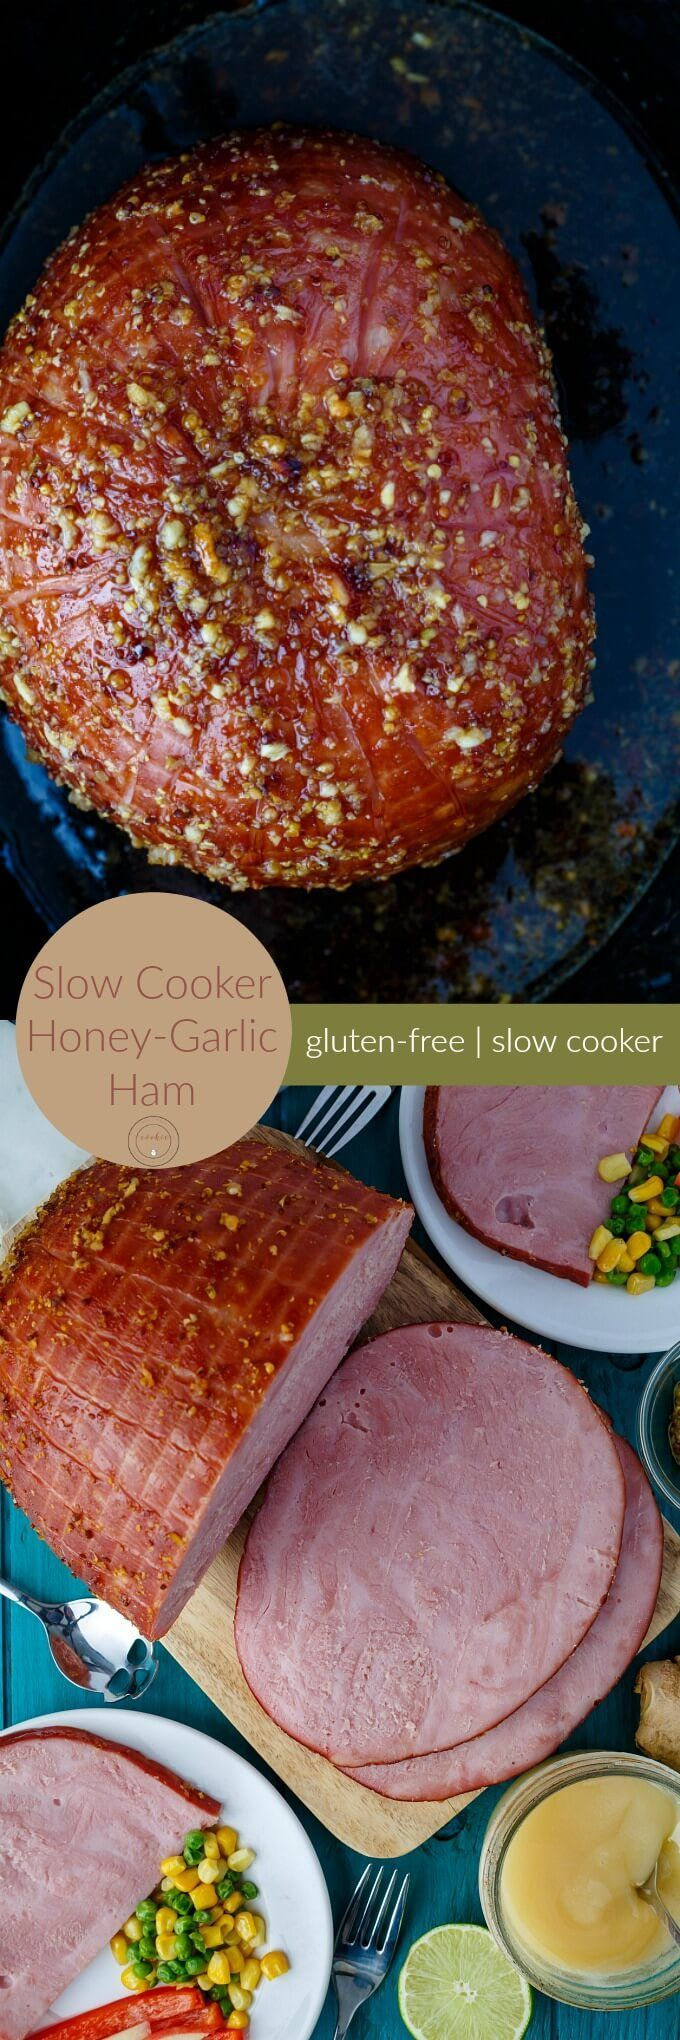 Slow Cooker Honey-Garlic Ham | Super easy weeknight meal that yields a ton of leftovers!